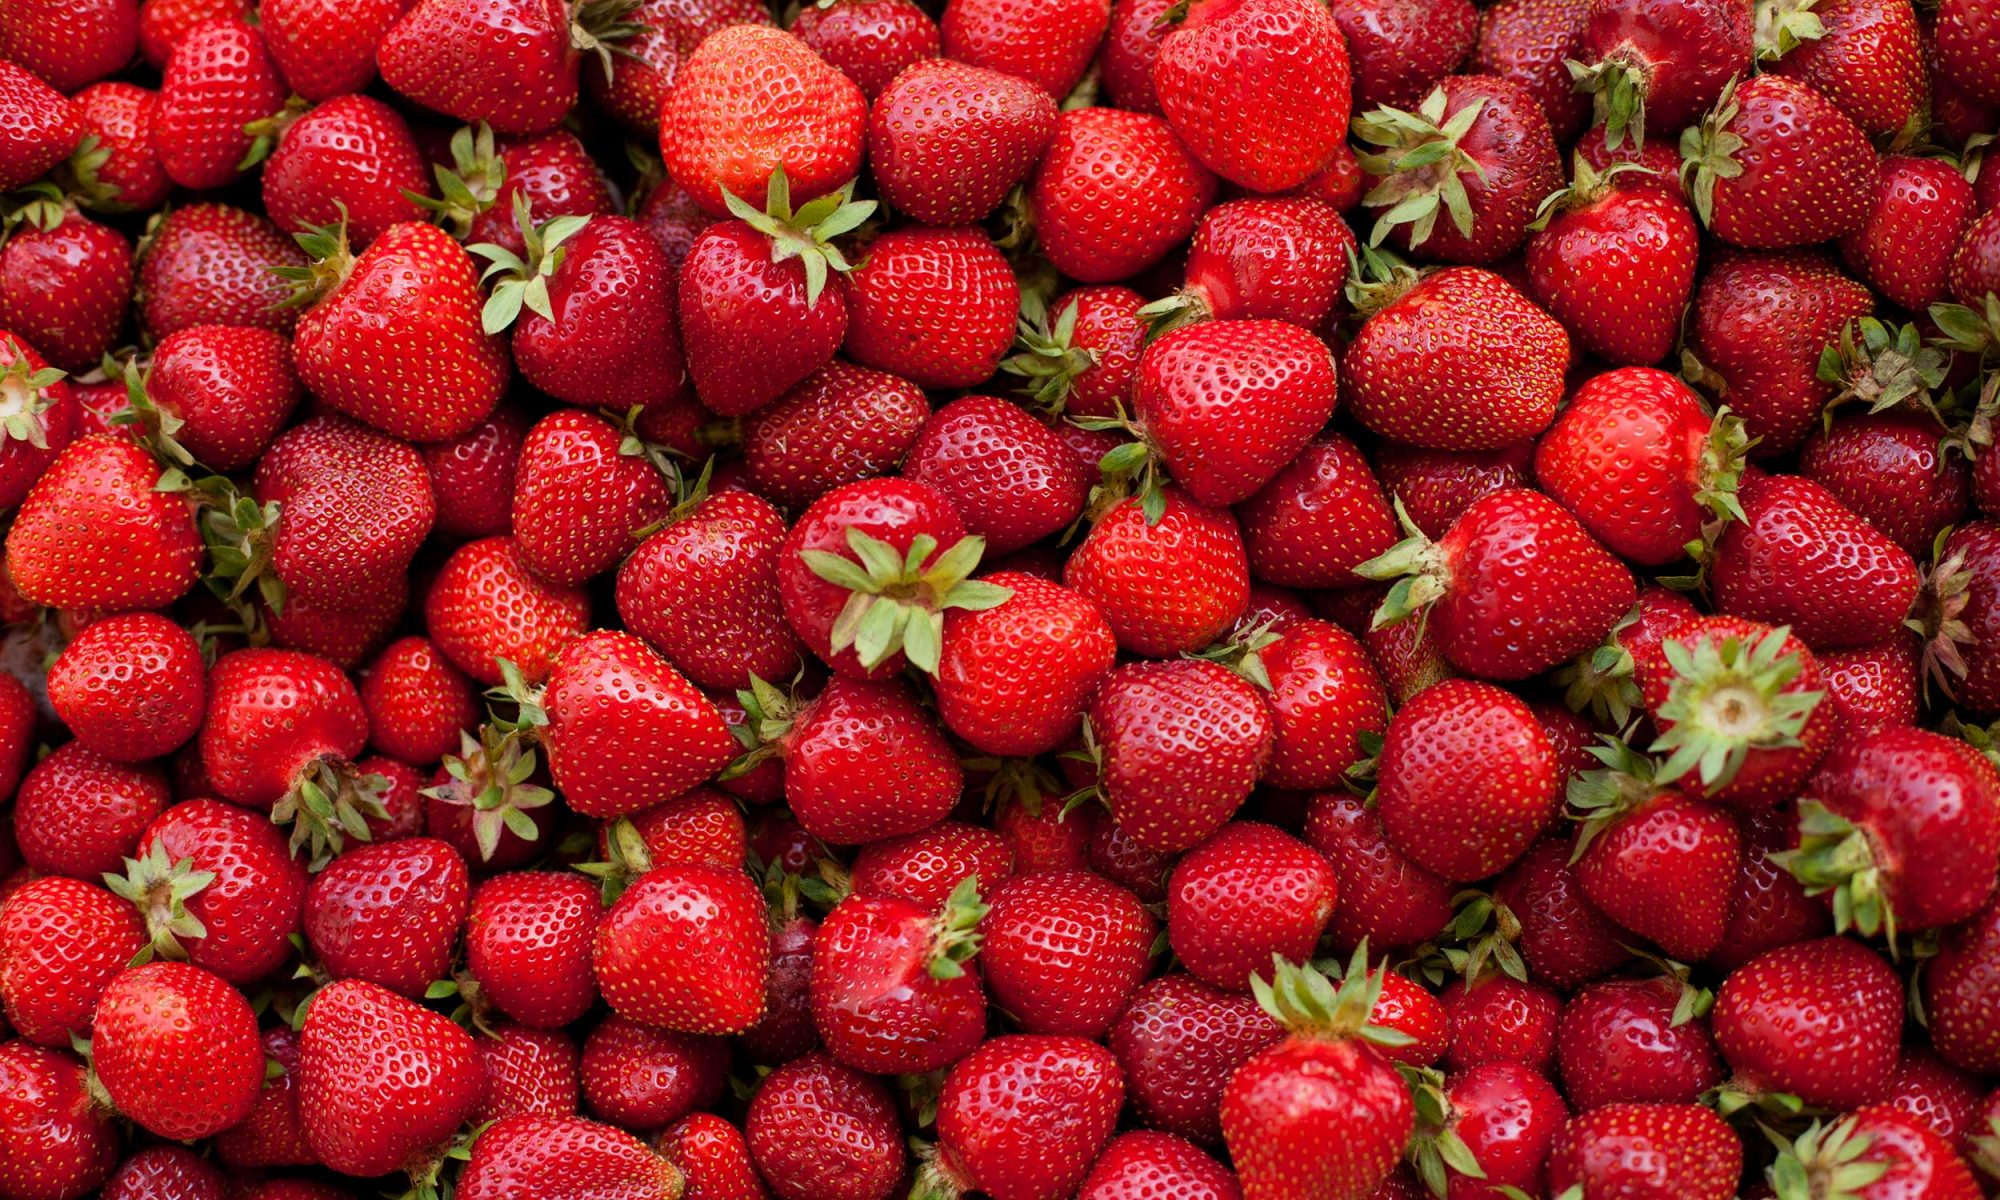 How Many Calories Are in a Strawberry?